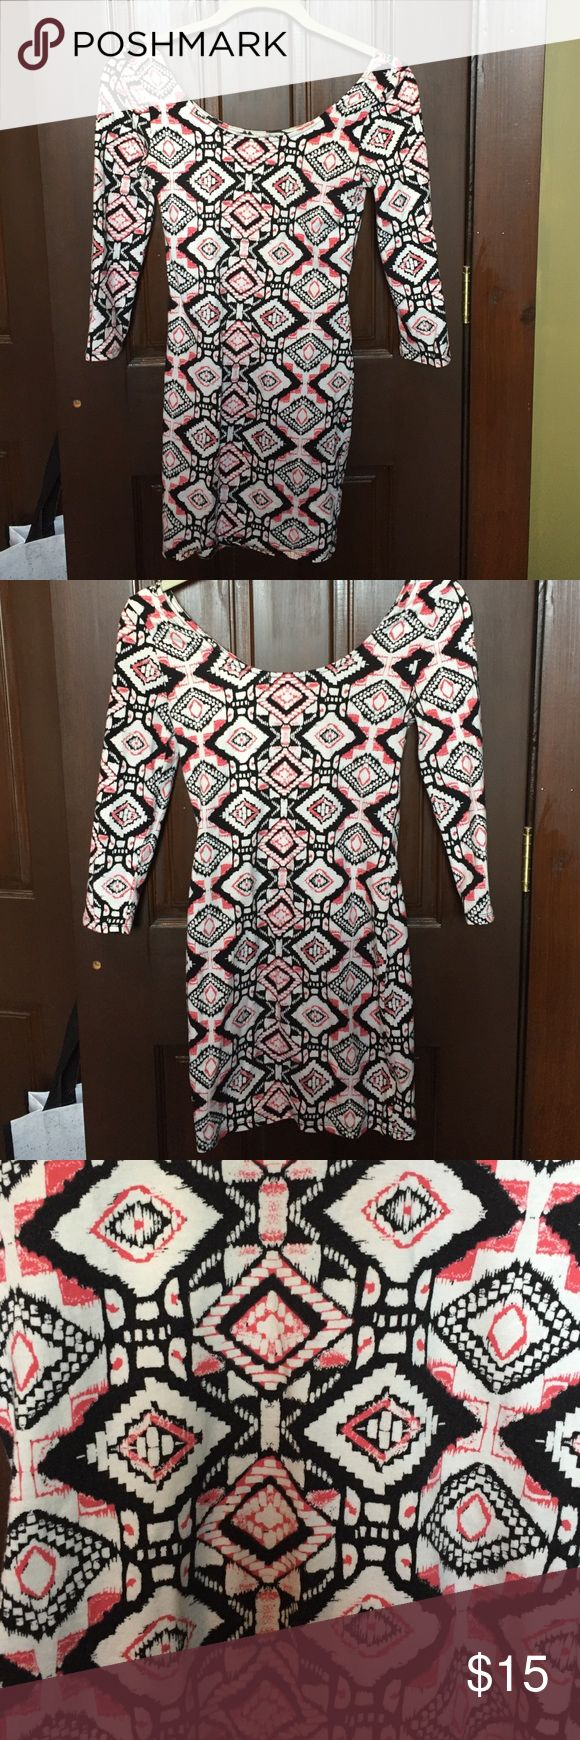 Patterned bodycon dress Super cute patterned dress. Only worn a could of time and is in great condition. The sleeves are 3/4 length. Charlotte Russe Dresses